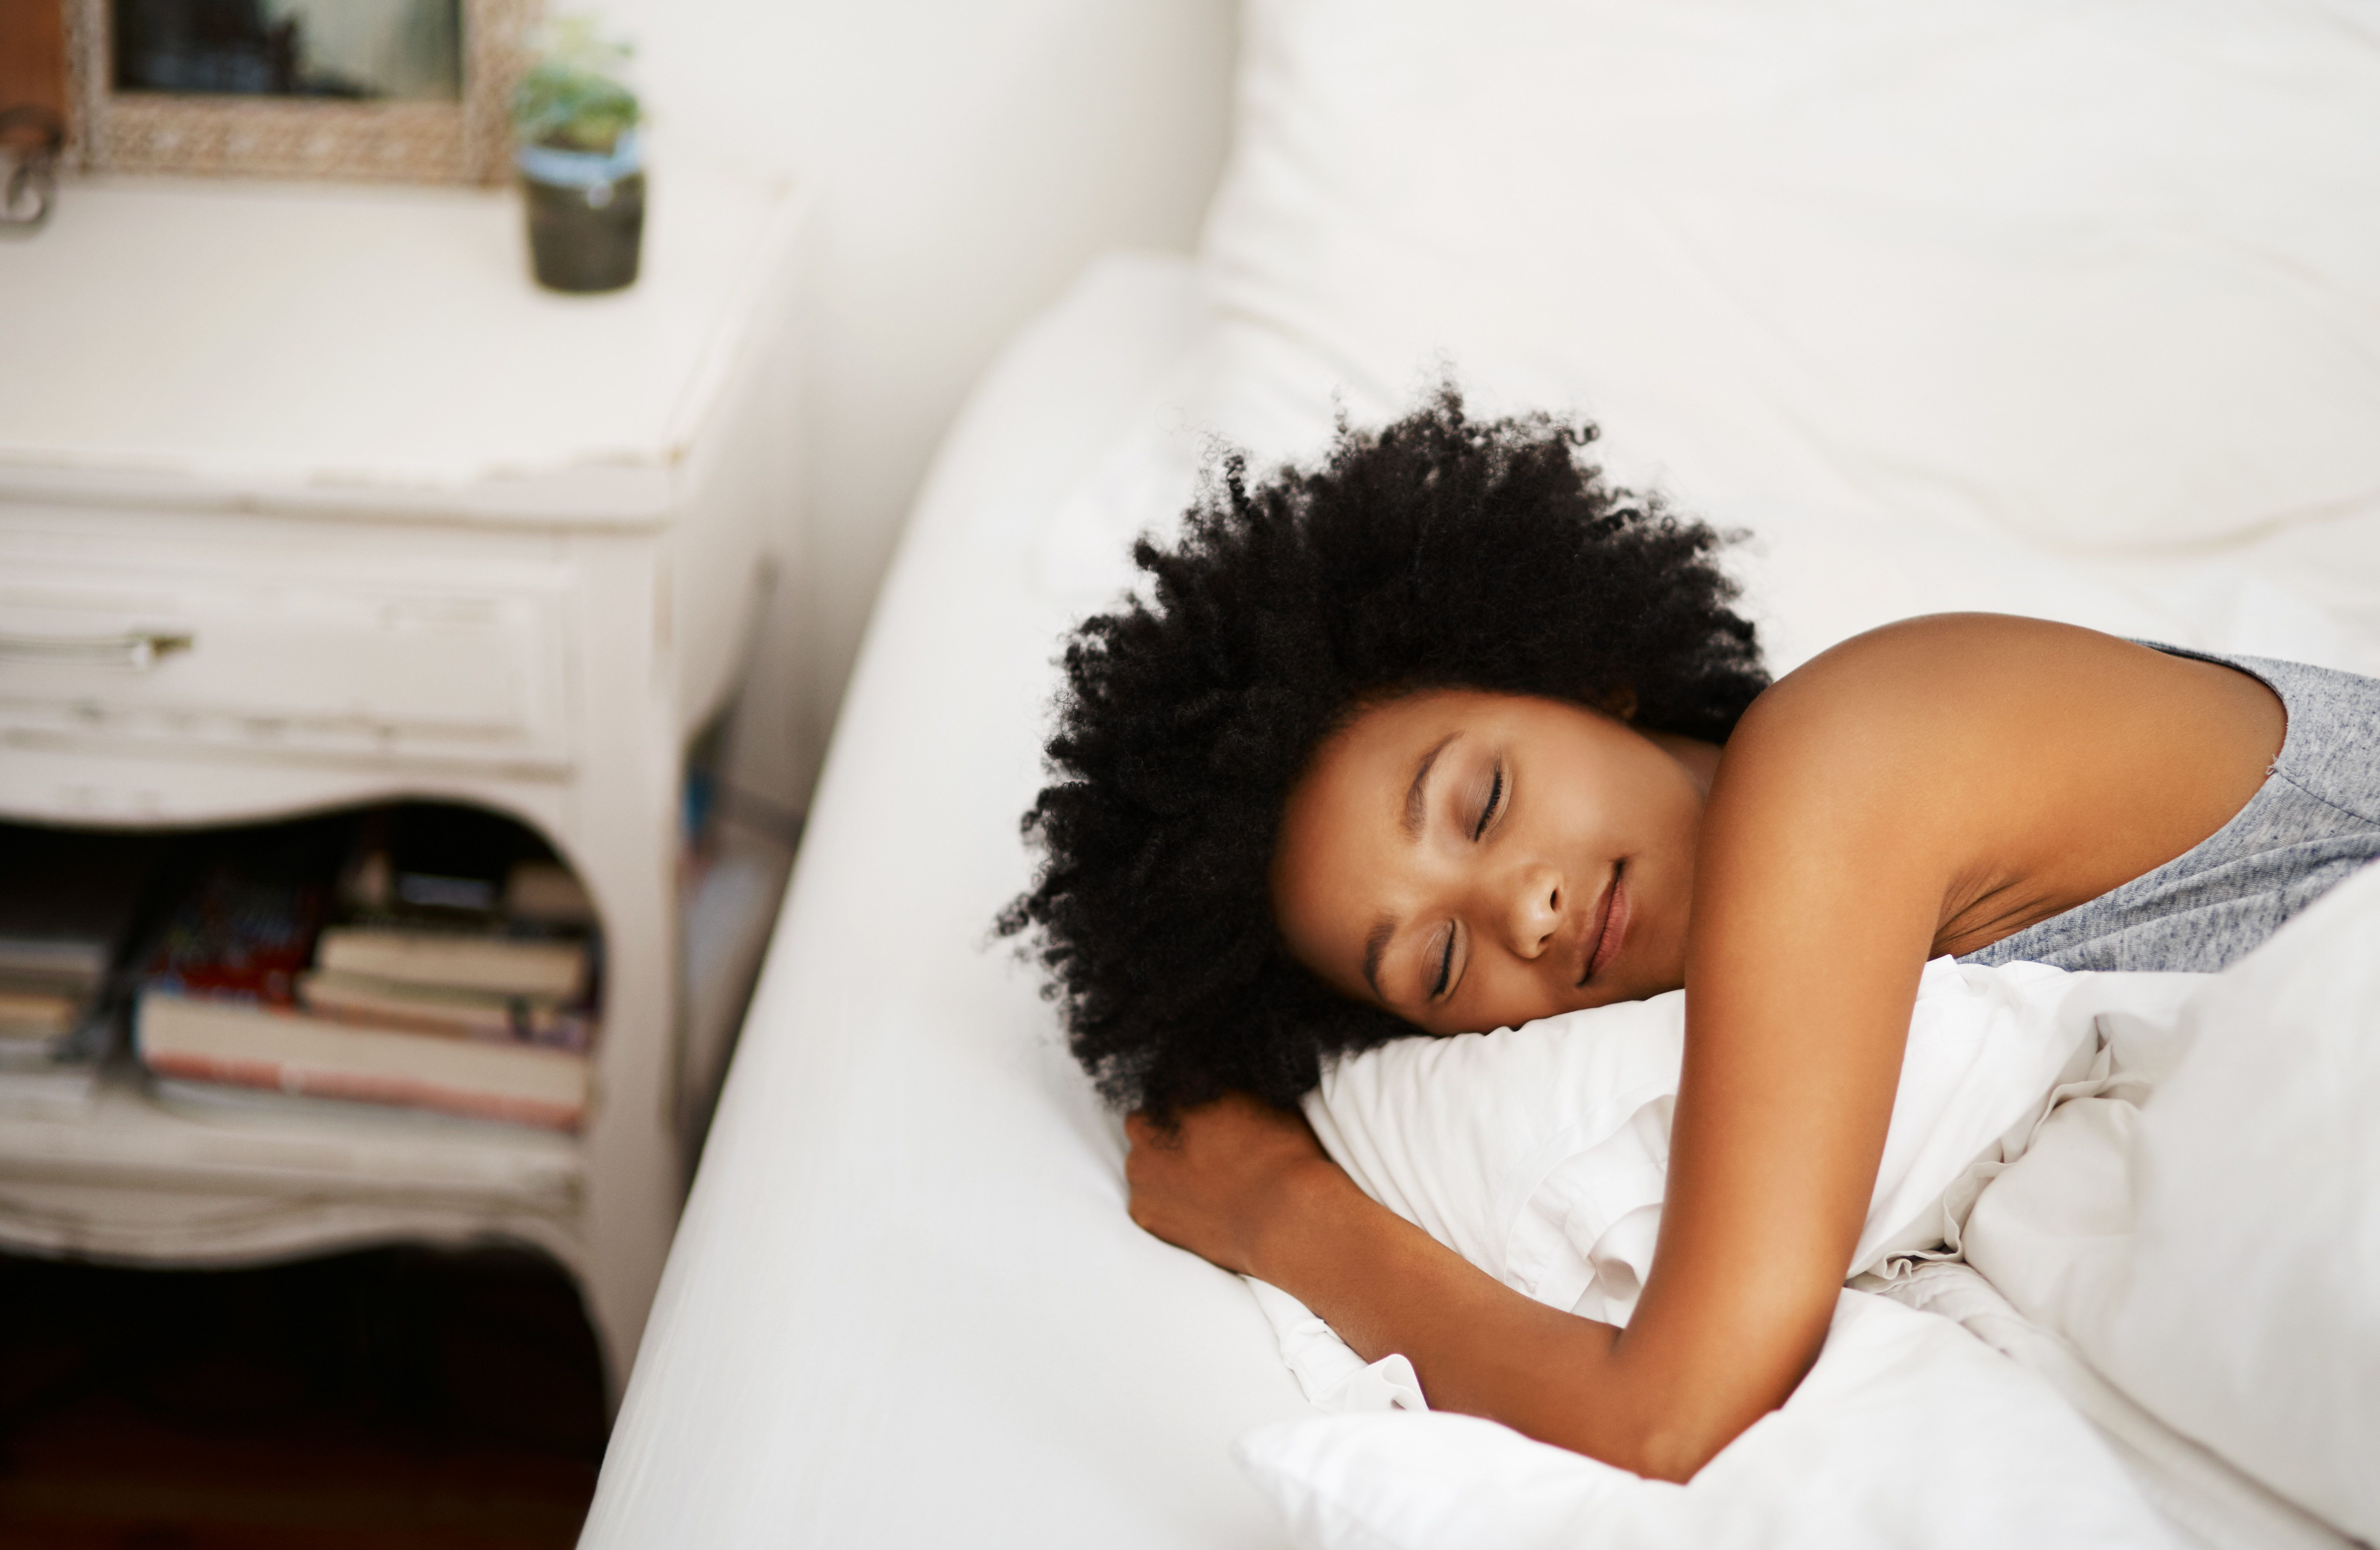 Forget Weekend Lie-Ins, Sleeping More Than 8 Hours 'Could Increase Risk Of Early